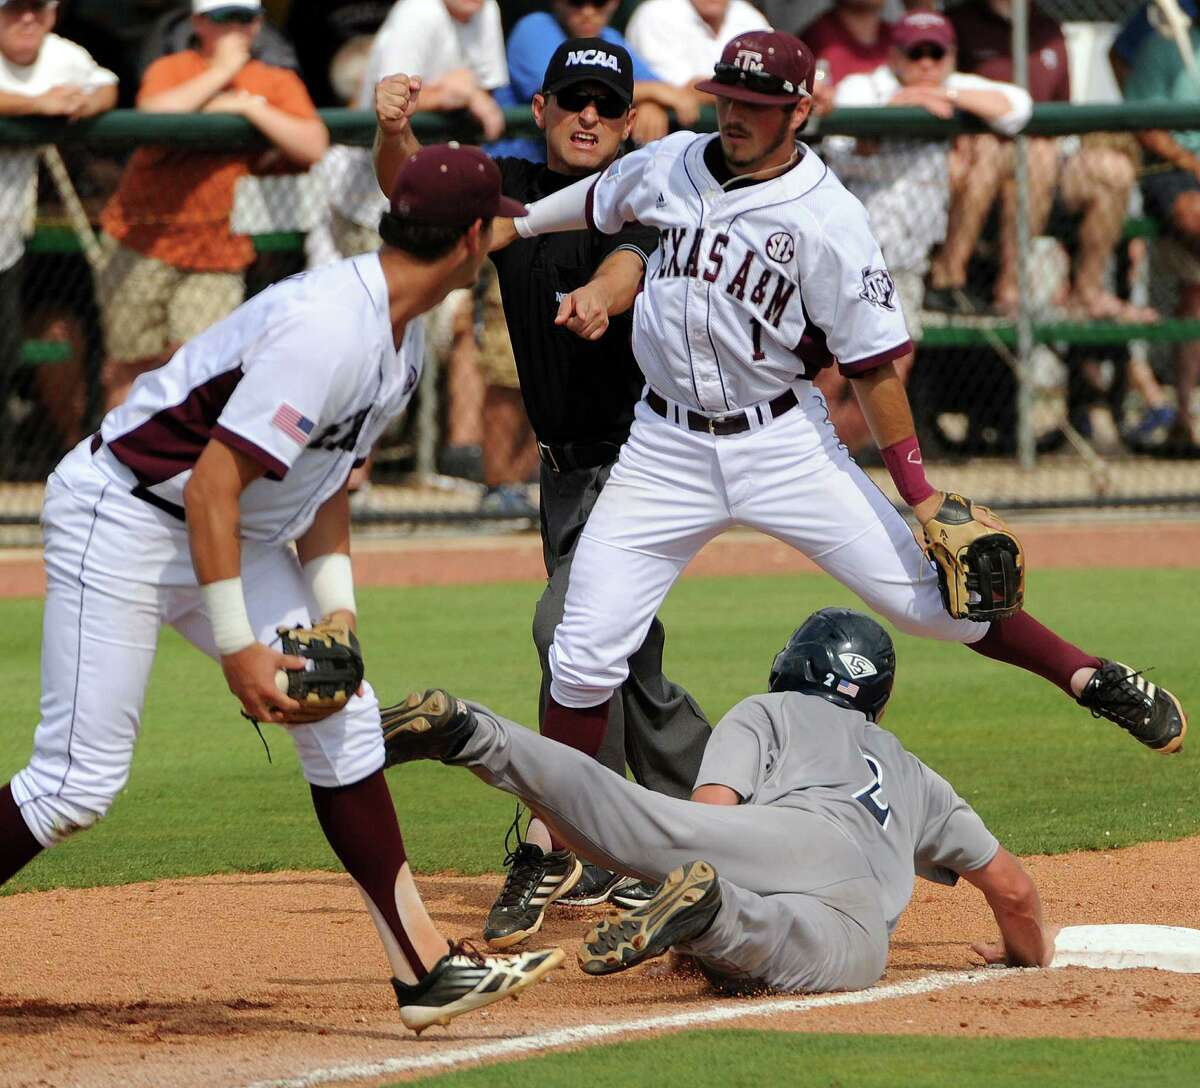 Rice's Shane Hoelscher, bottom, dives back to third base after being tagged out by Texas A&M's Logan Mottebrok, right, as Blake Allemand, right, jumps out of the way during the sixth inning of an NCAA baseball regional game, Sunday, June 1, 2014, at Reckling Park in Houston.